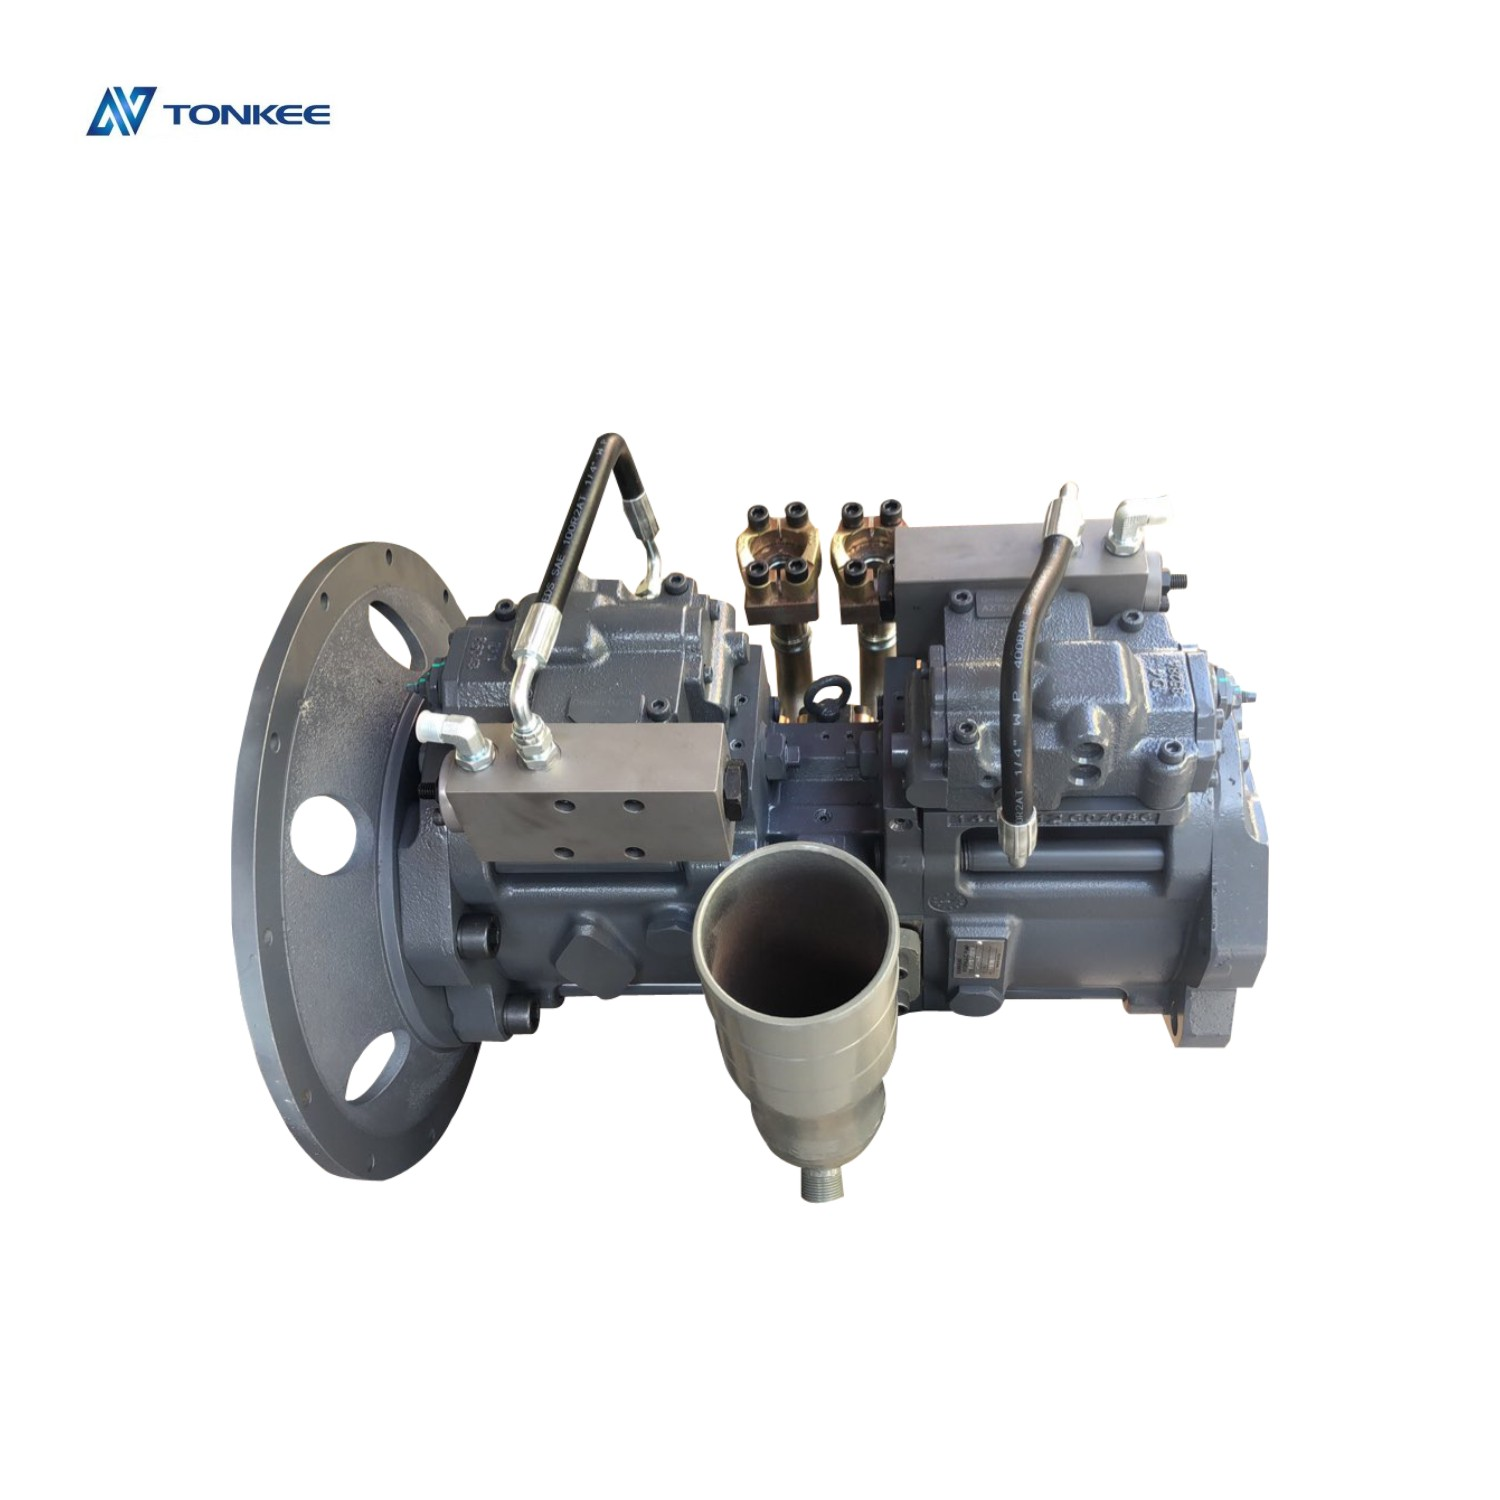 708-2L-00300 hydraulic main pump K3V112DT convert to PC200-7 hydraulic pump replace HPV95 modified piston pump for KOMATSU